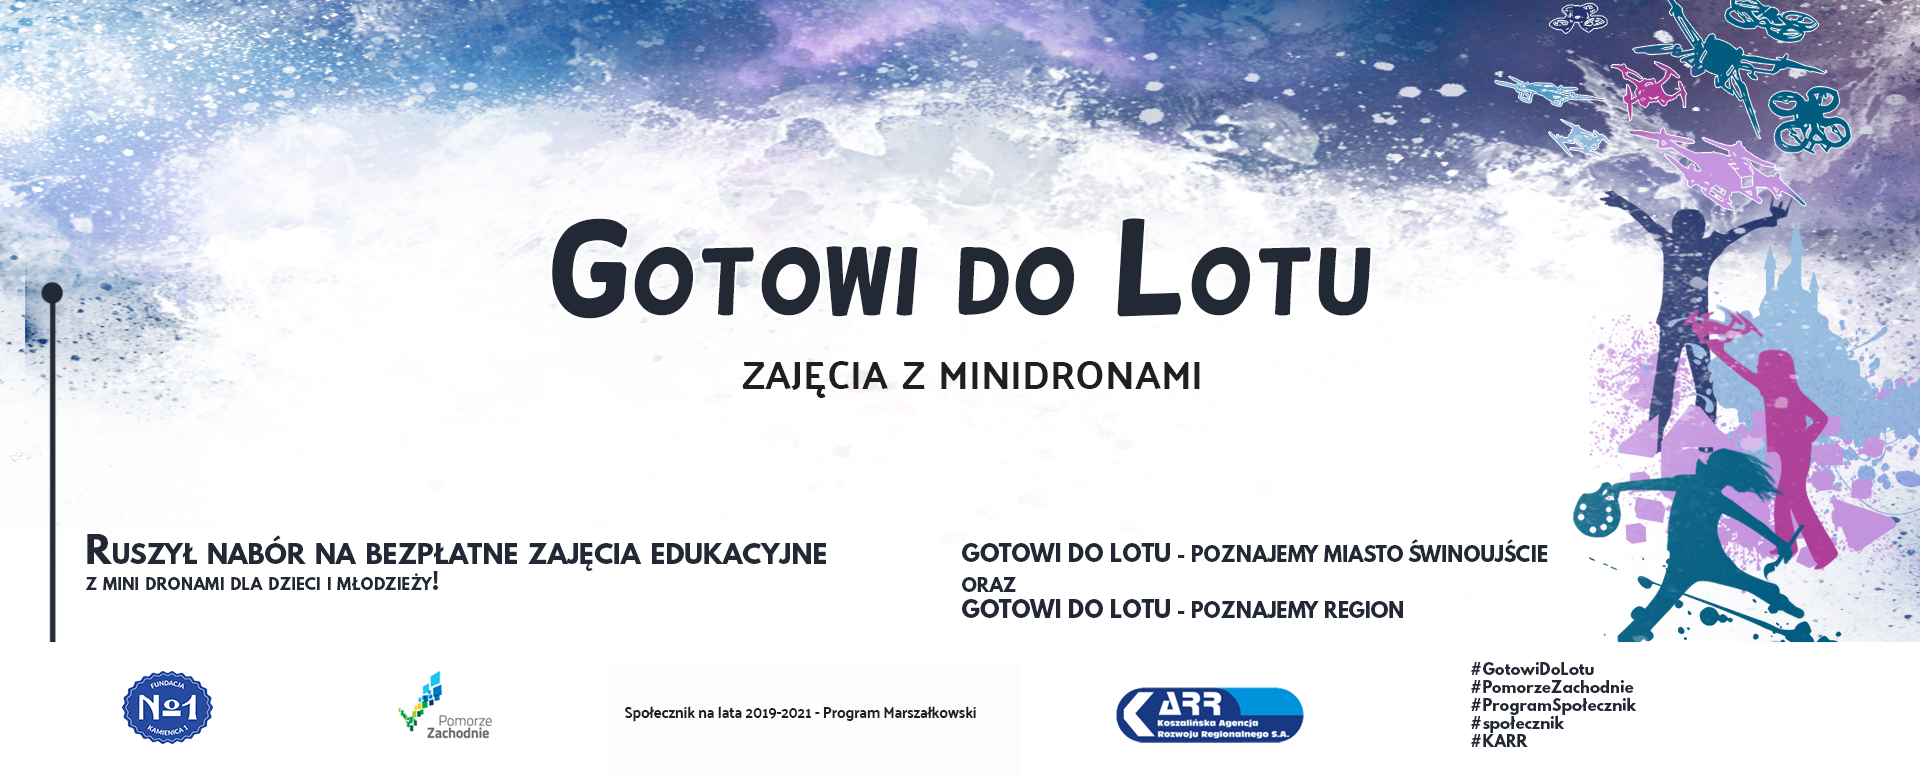 Gotowi do lotu